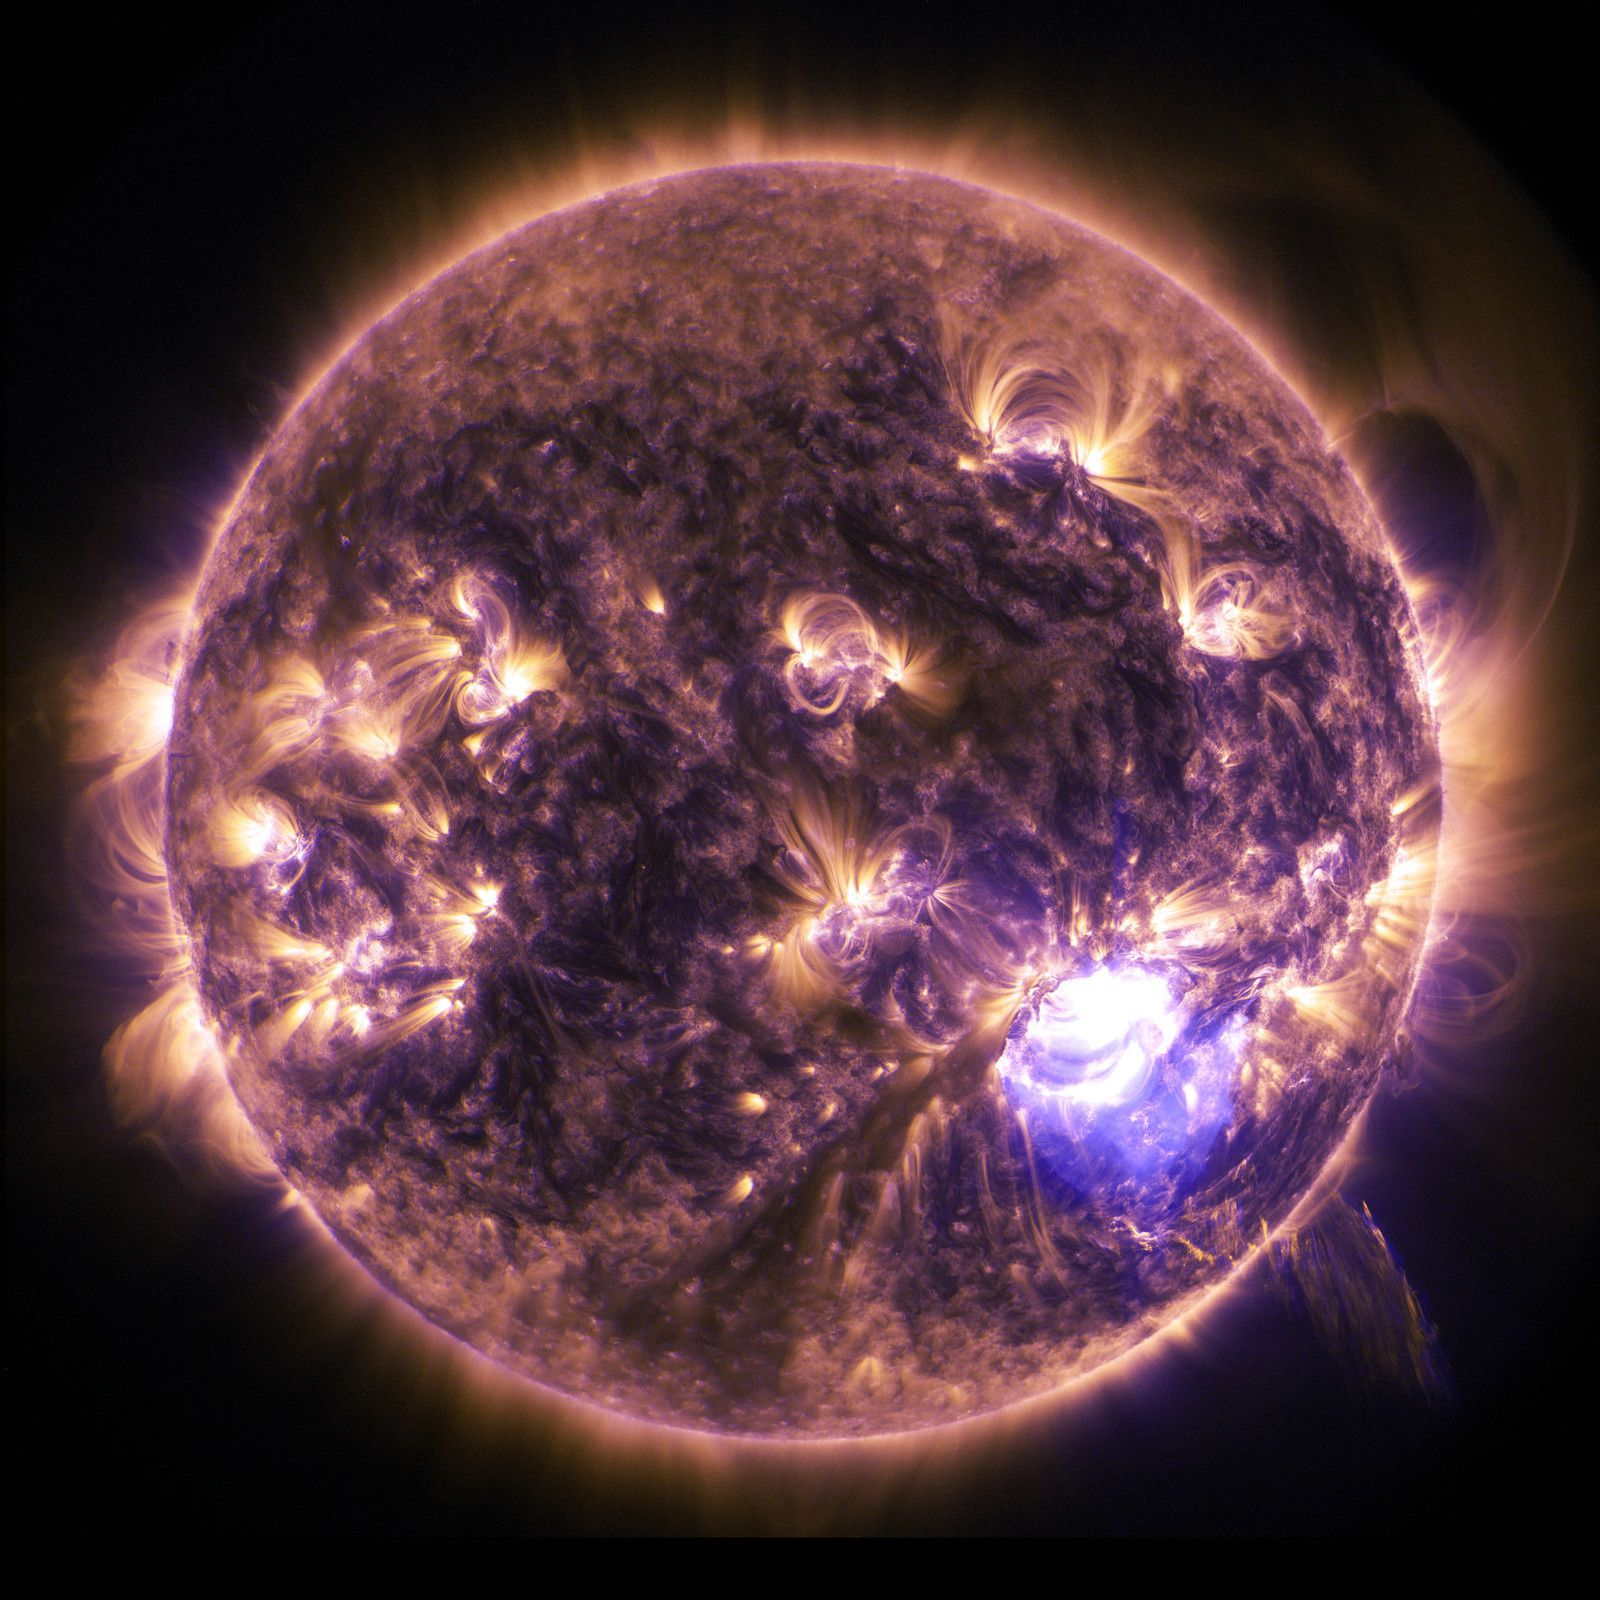 NASA's Solar Dynamics Observatory captured this image of a significant solar flare – as seen in the bright flash on the right – on Dec. 19, 2014. The image shows a subset of extreme ultraviolet light that highlights the extremely hot material in flares. Image Credit: NASA/SDO